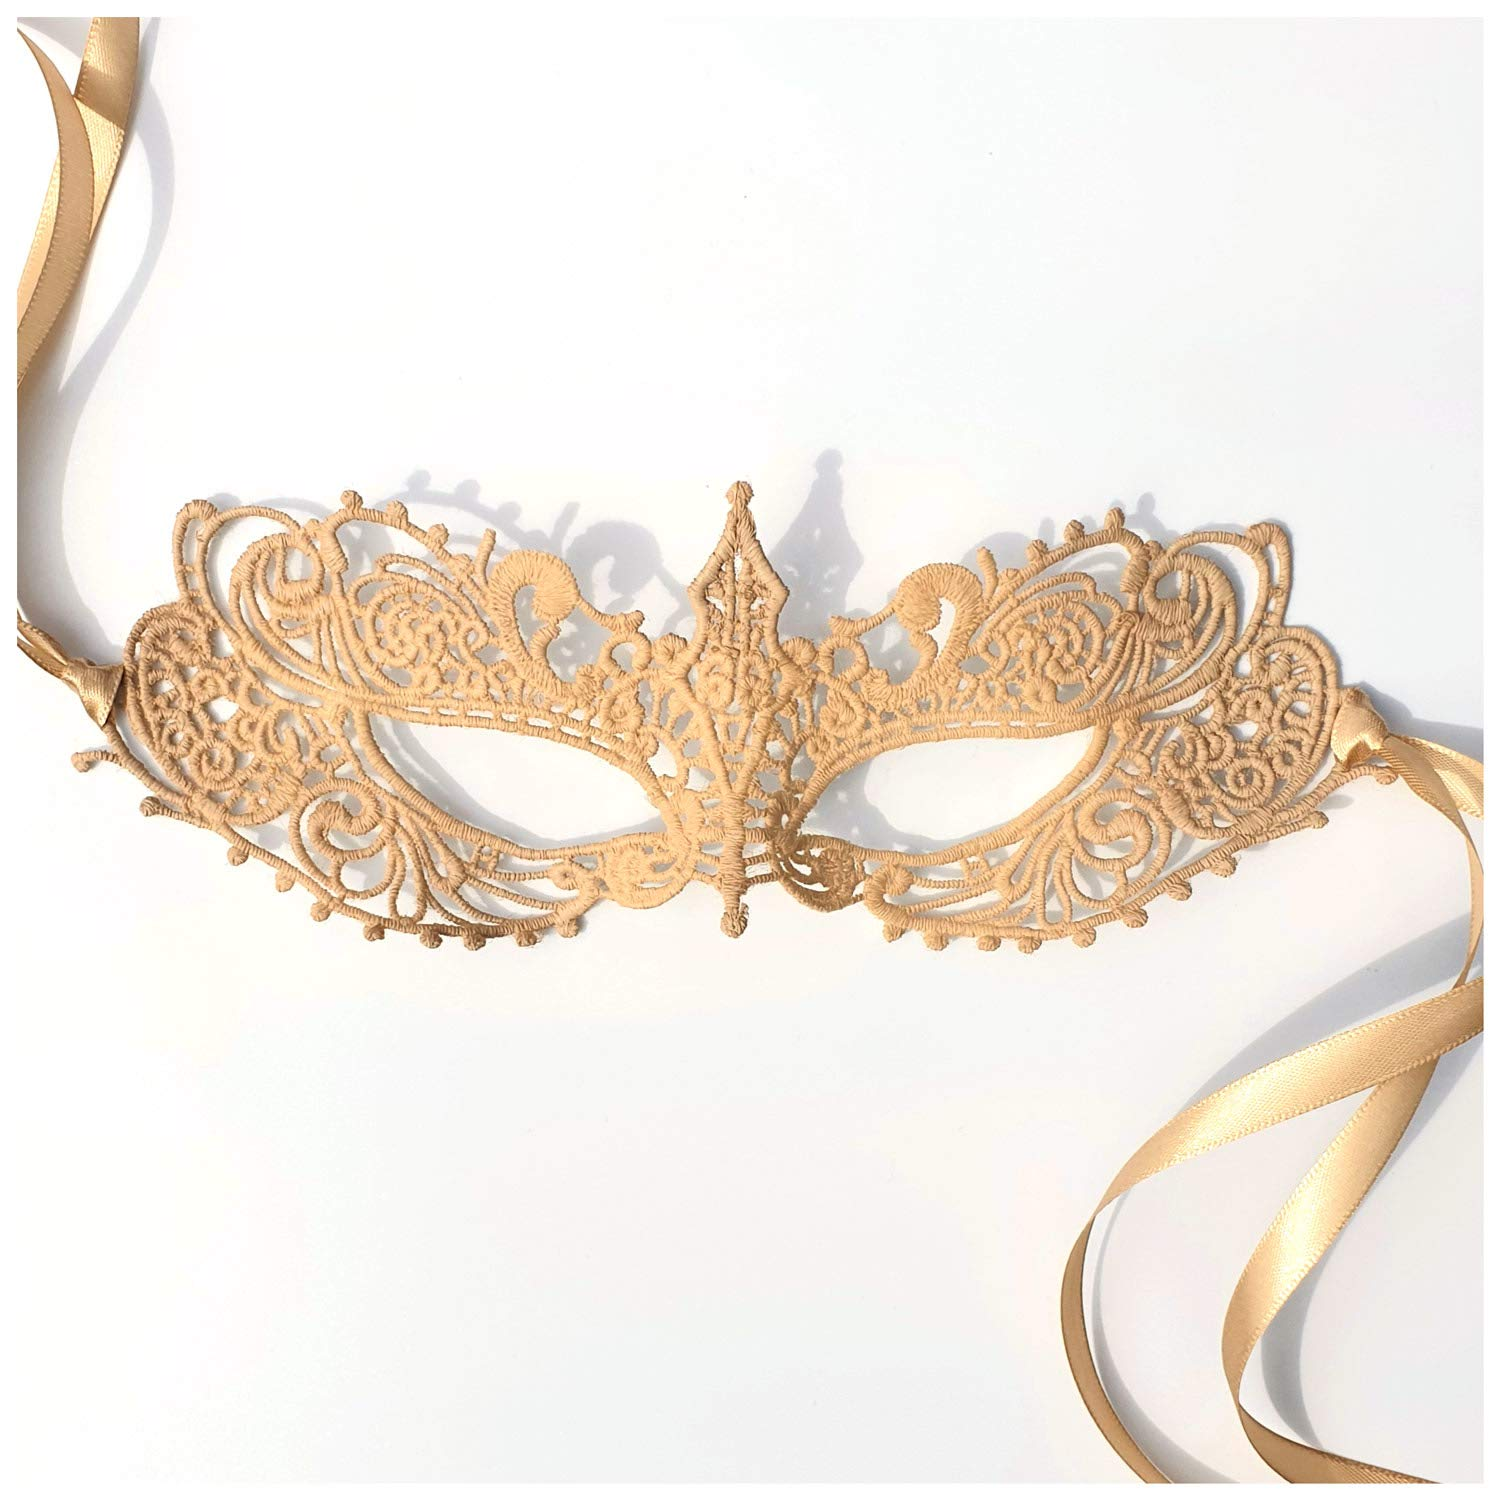 Samantha Peach Masquerade Mask - The Authentic 50 Shades Darker Ana Lace Anastasia Goddess Mask (Nude)